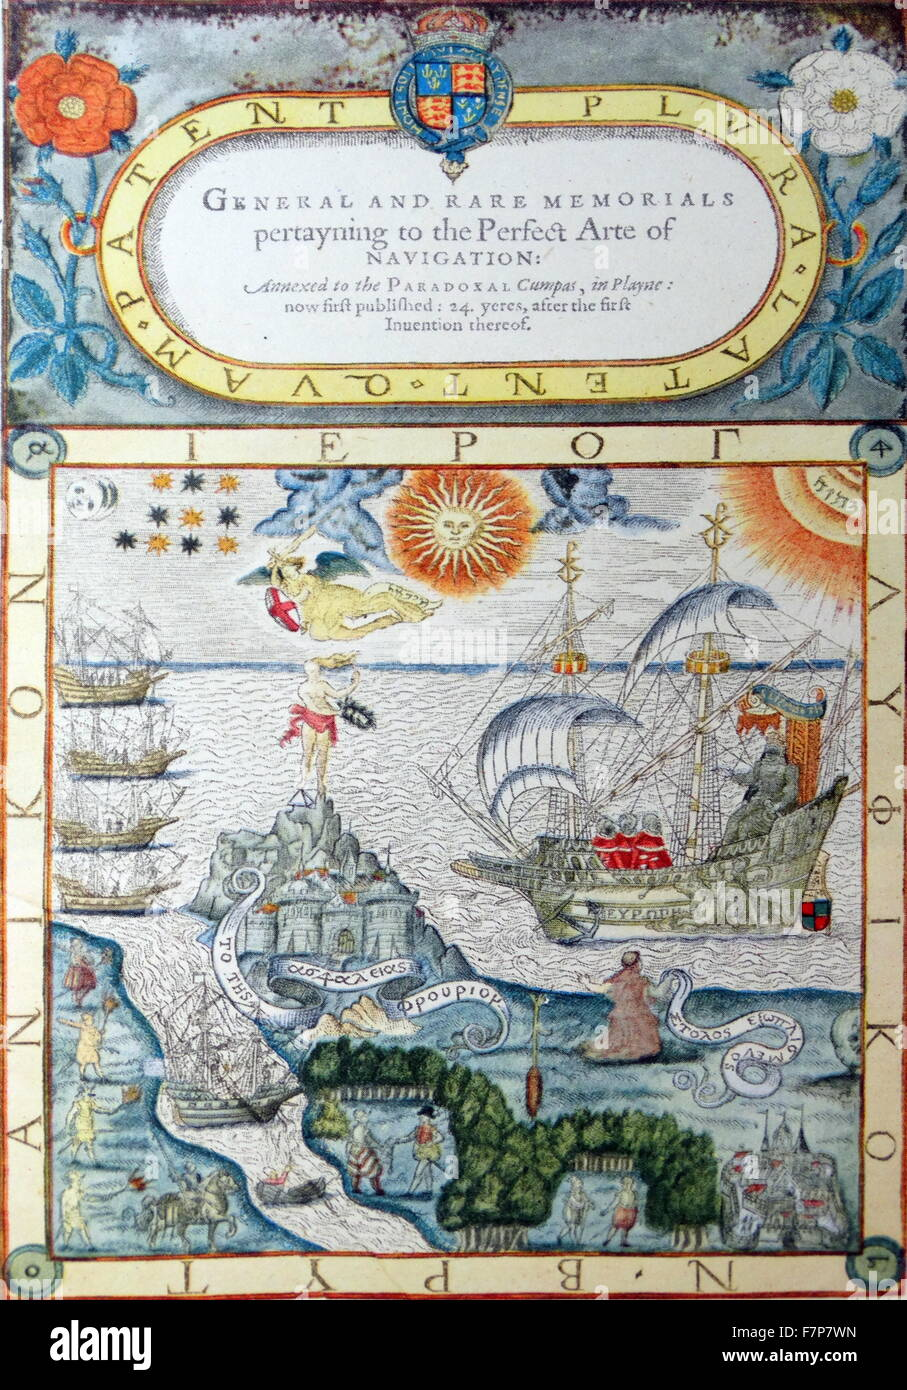 Frontispiece to John Doe's General and Rare Memorials 1577 - Stock Image